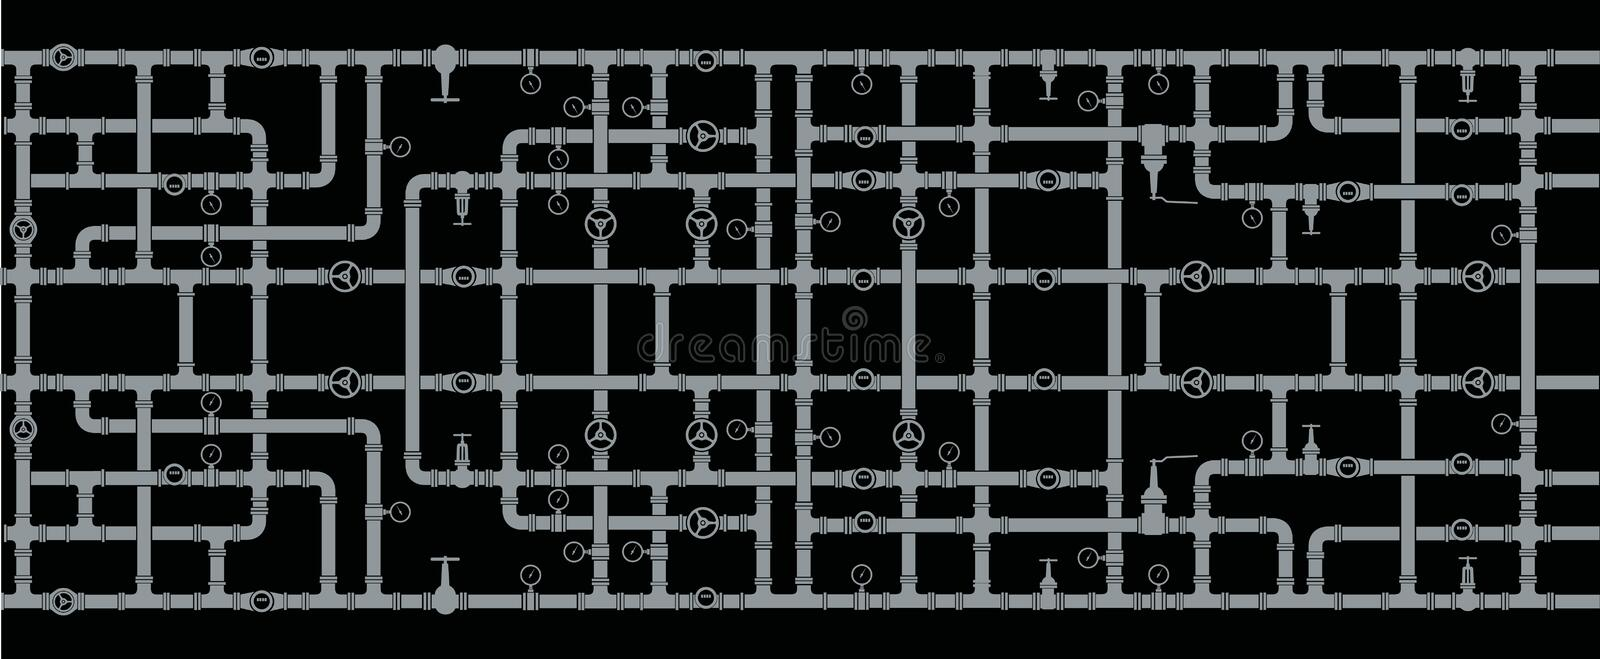 Background of intertwined water pipes. Elements of sanitary ware. Seamless vector illustration